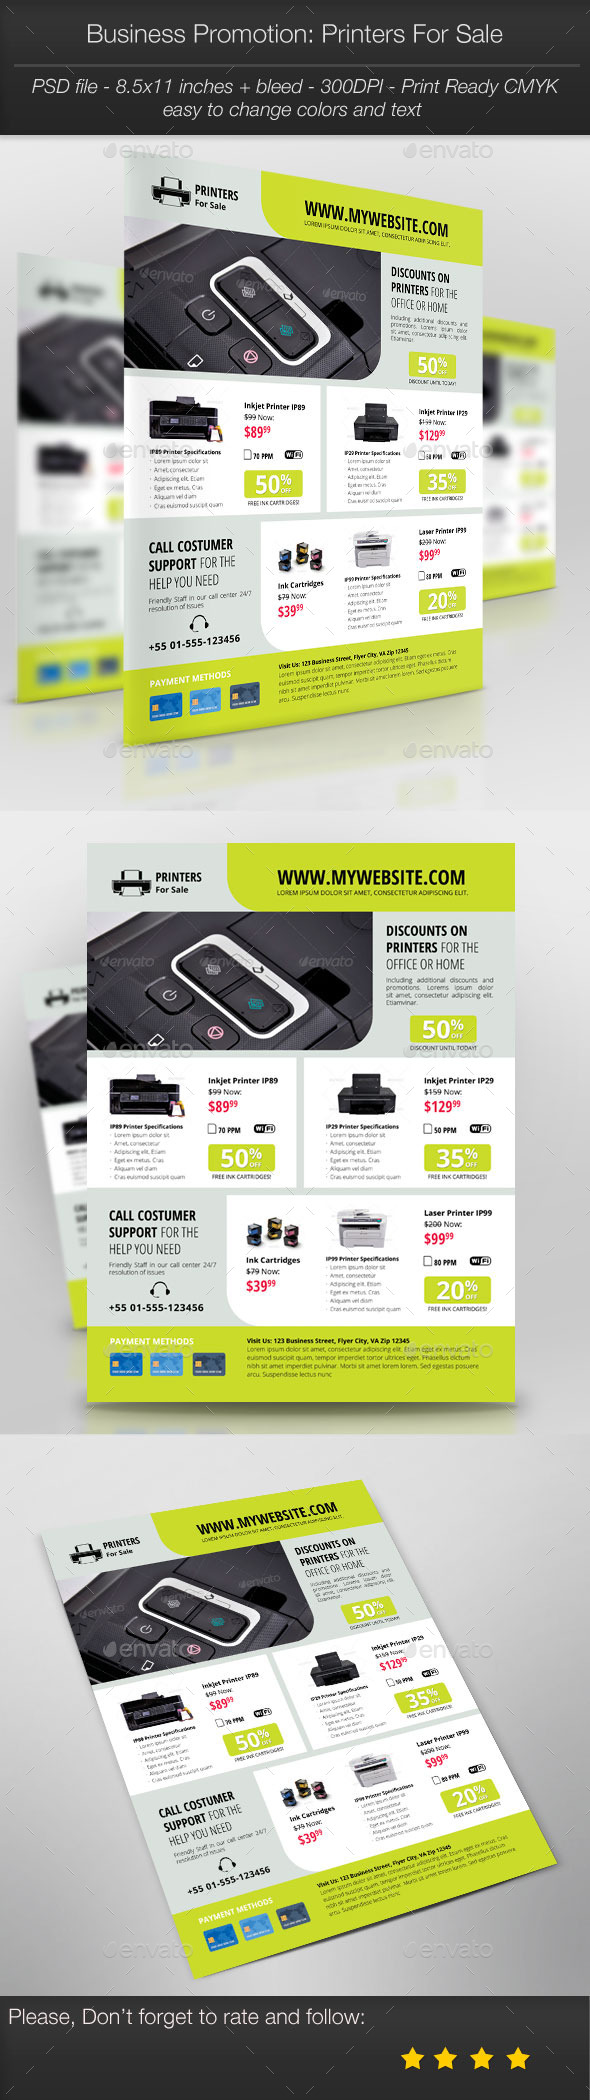 GraphicRiver Business Promotion Printers For Sale 11160731